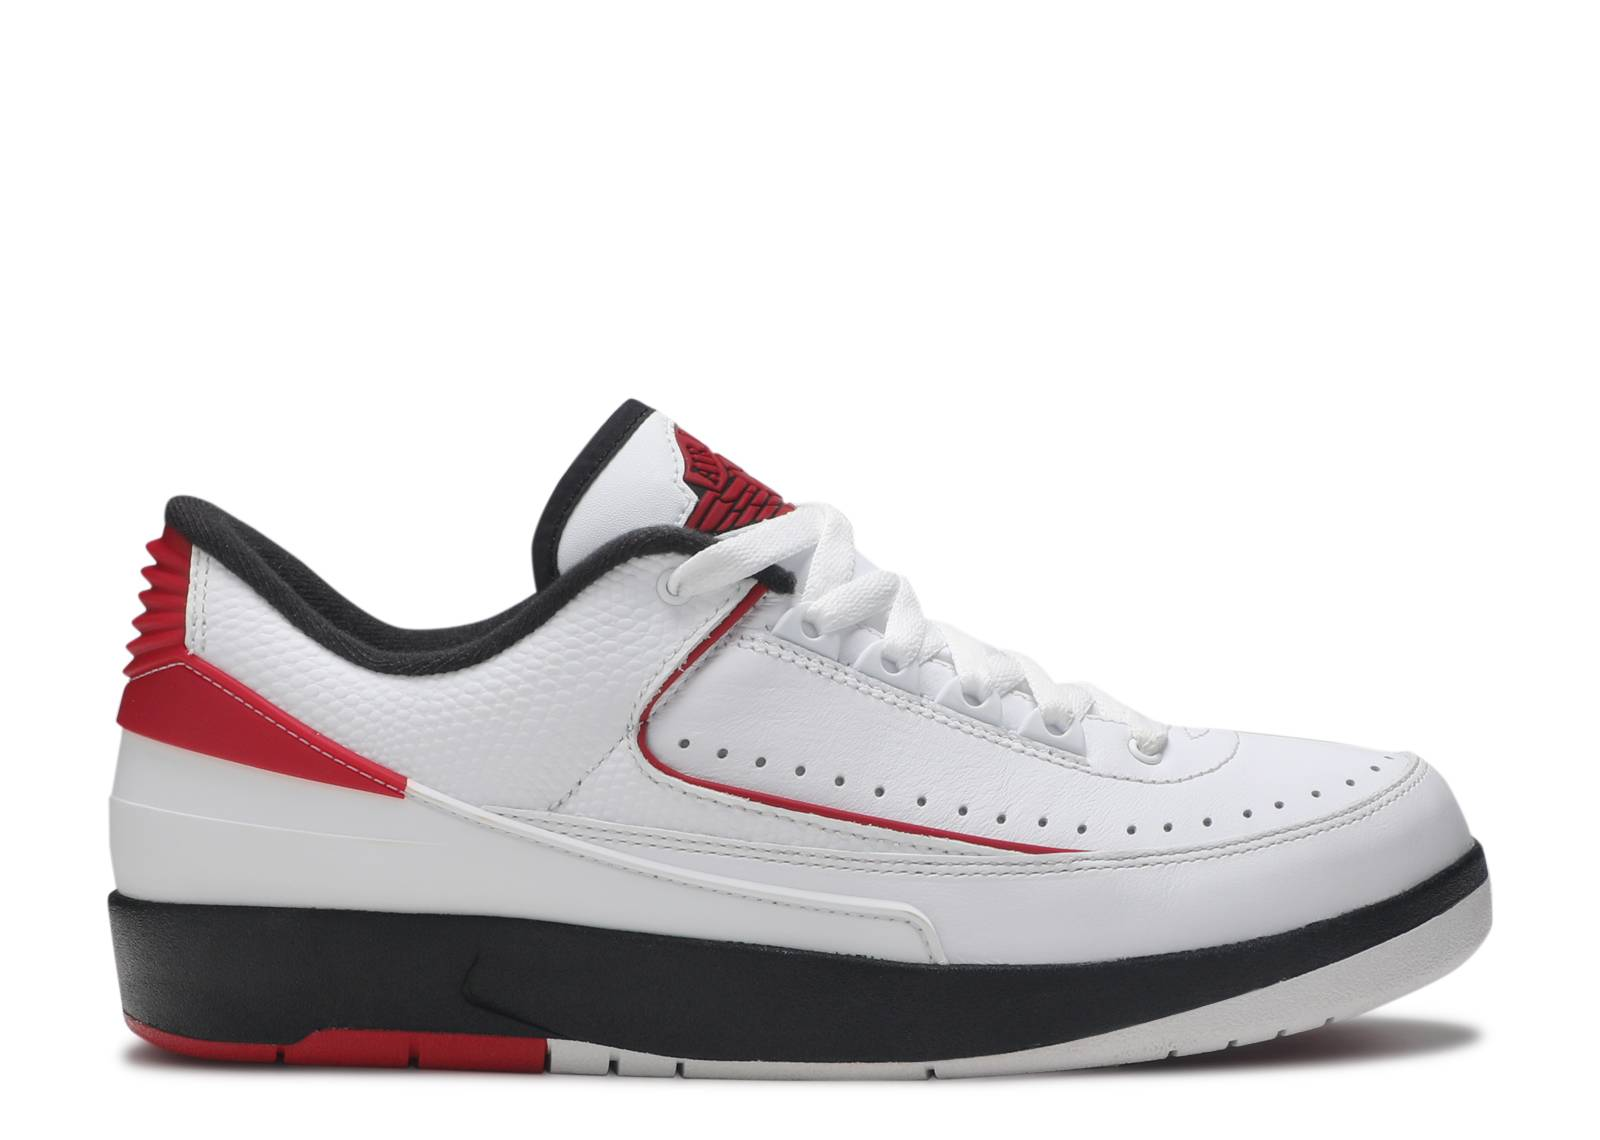 detailed look 1d72d 8dc21 air jordan 2 retro low